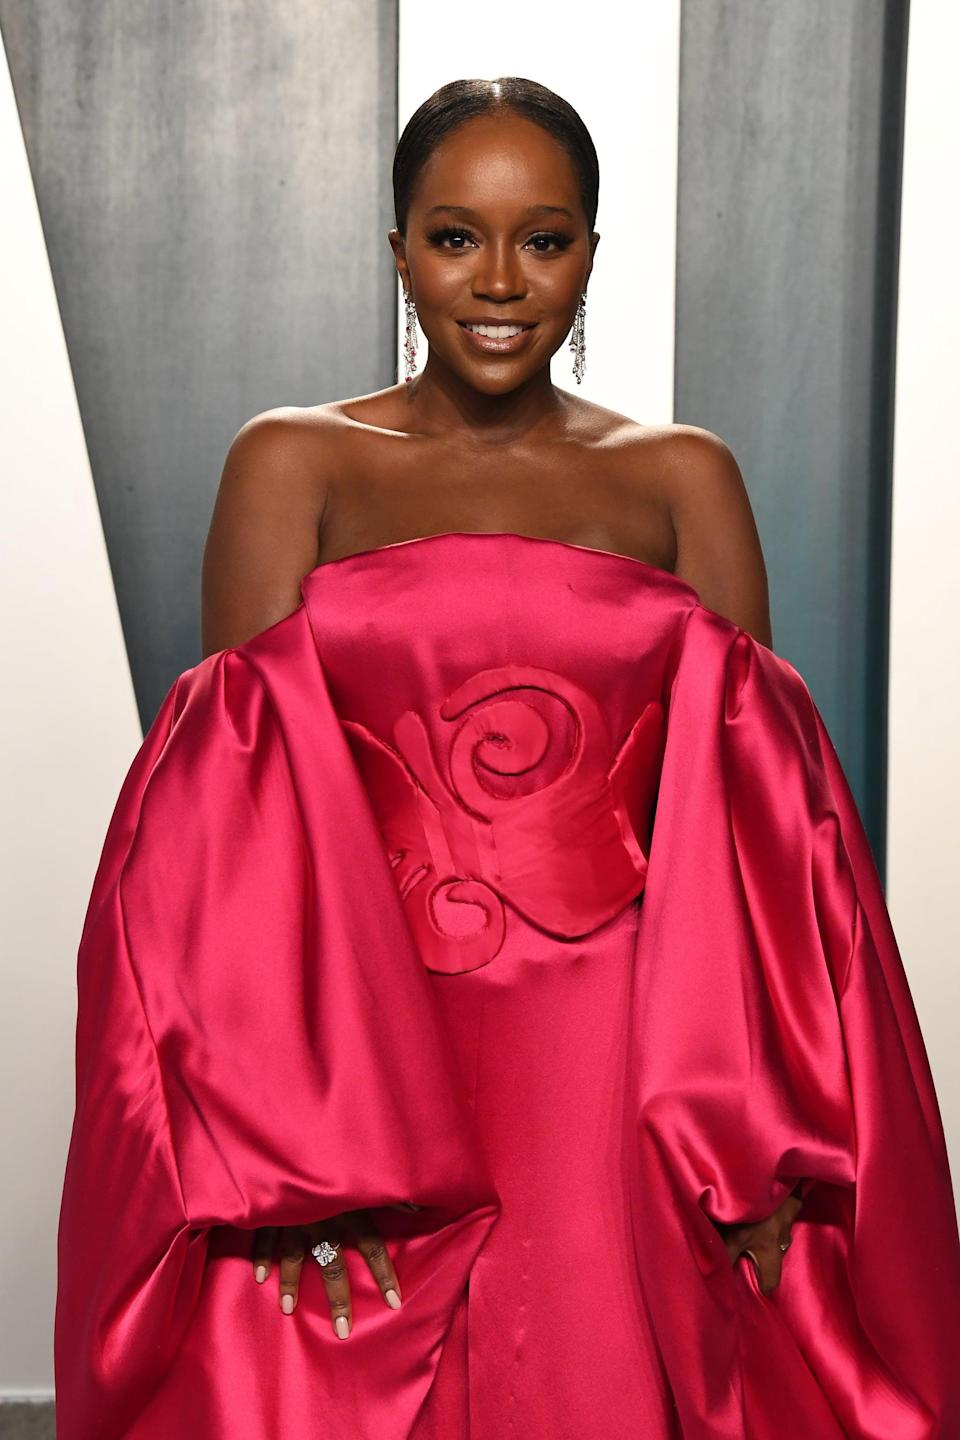 BEVERLY HILLS, CALIFORNIA - FEBRUARY 09: Aja Naomi King attends the 2020 Vanity Fair Oscar Party hosted by Radhika Jones at Wallis Annenberg Center for the Performing Arts on February 09, 2020 in Beverly Hills, California. (Photo by Jon Kopaloff/WireImage)